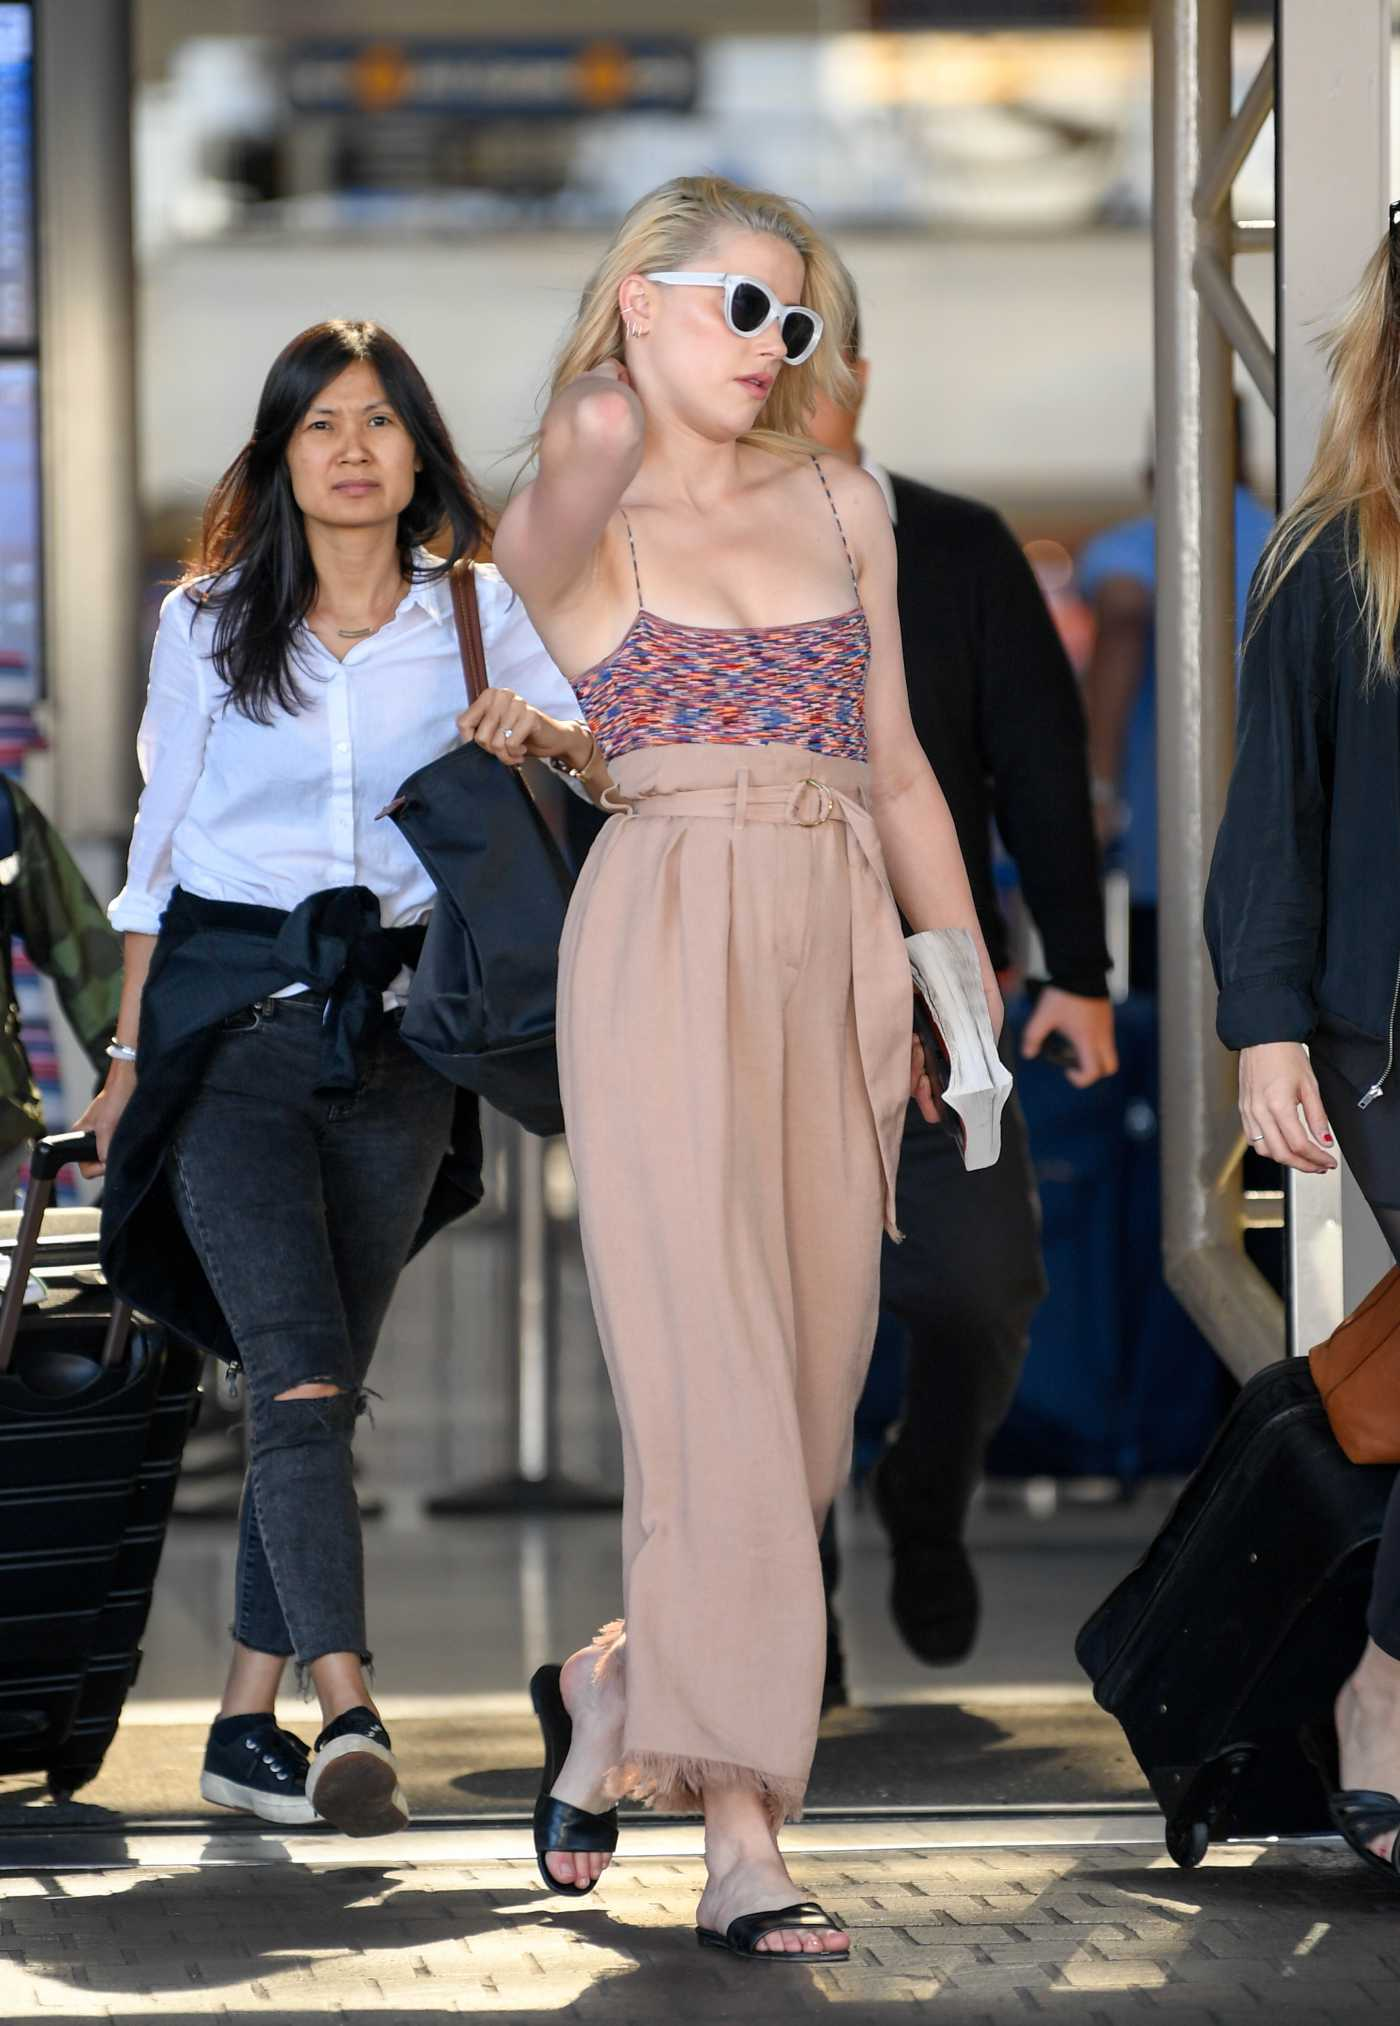 Amber Heard in a Beige Pants Arrives at LAX Airport in Los Angeles 07/05/2019